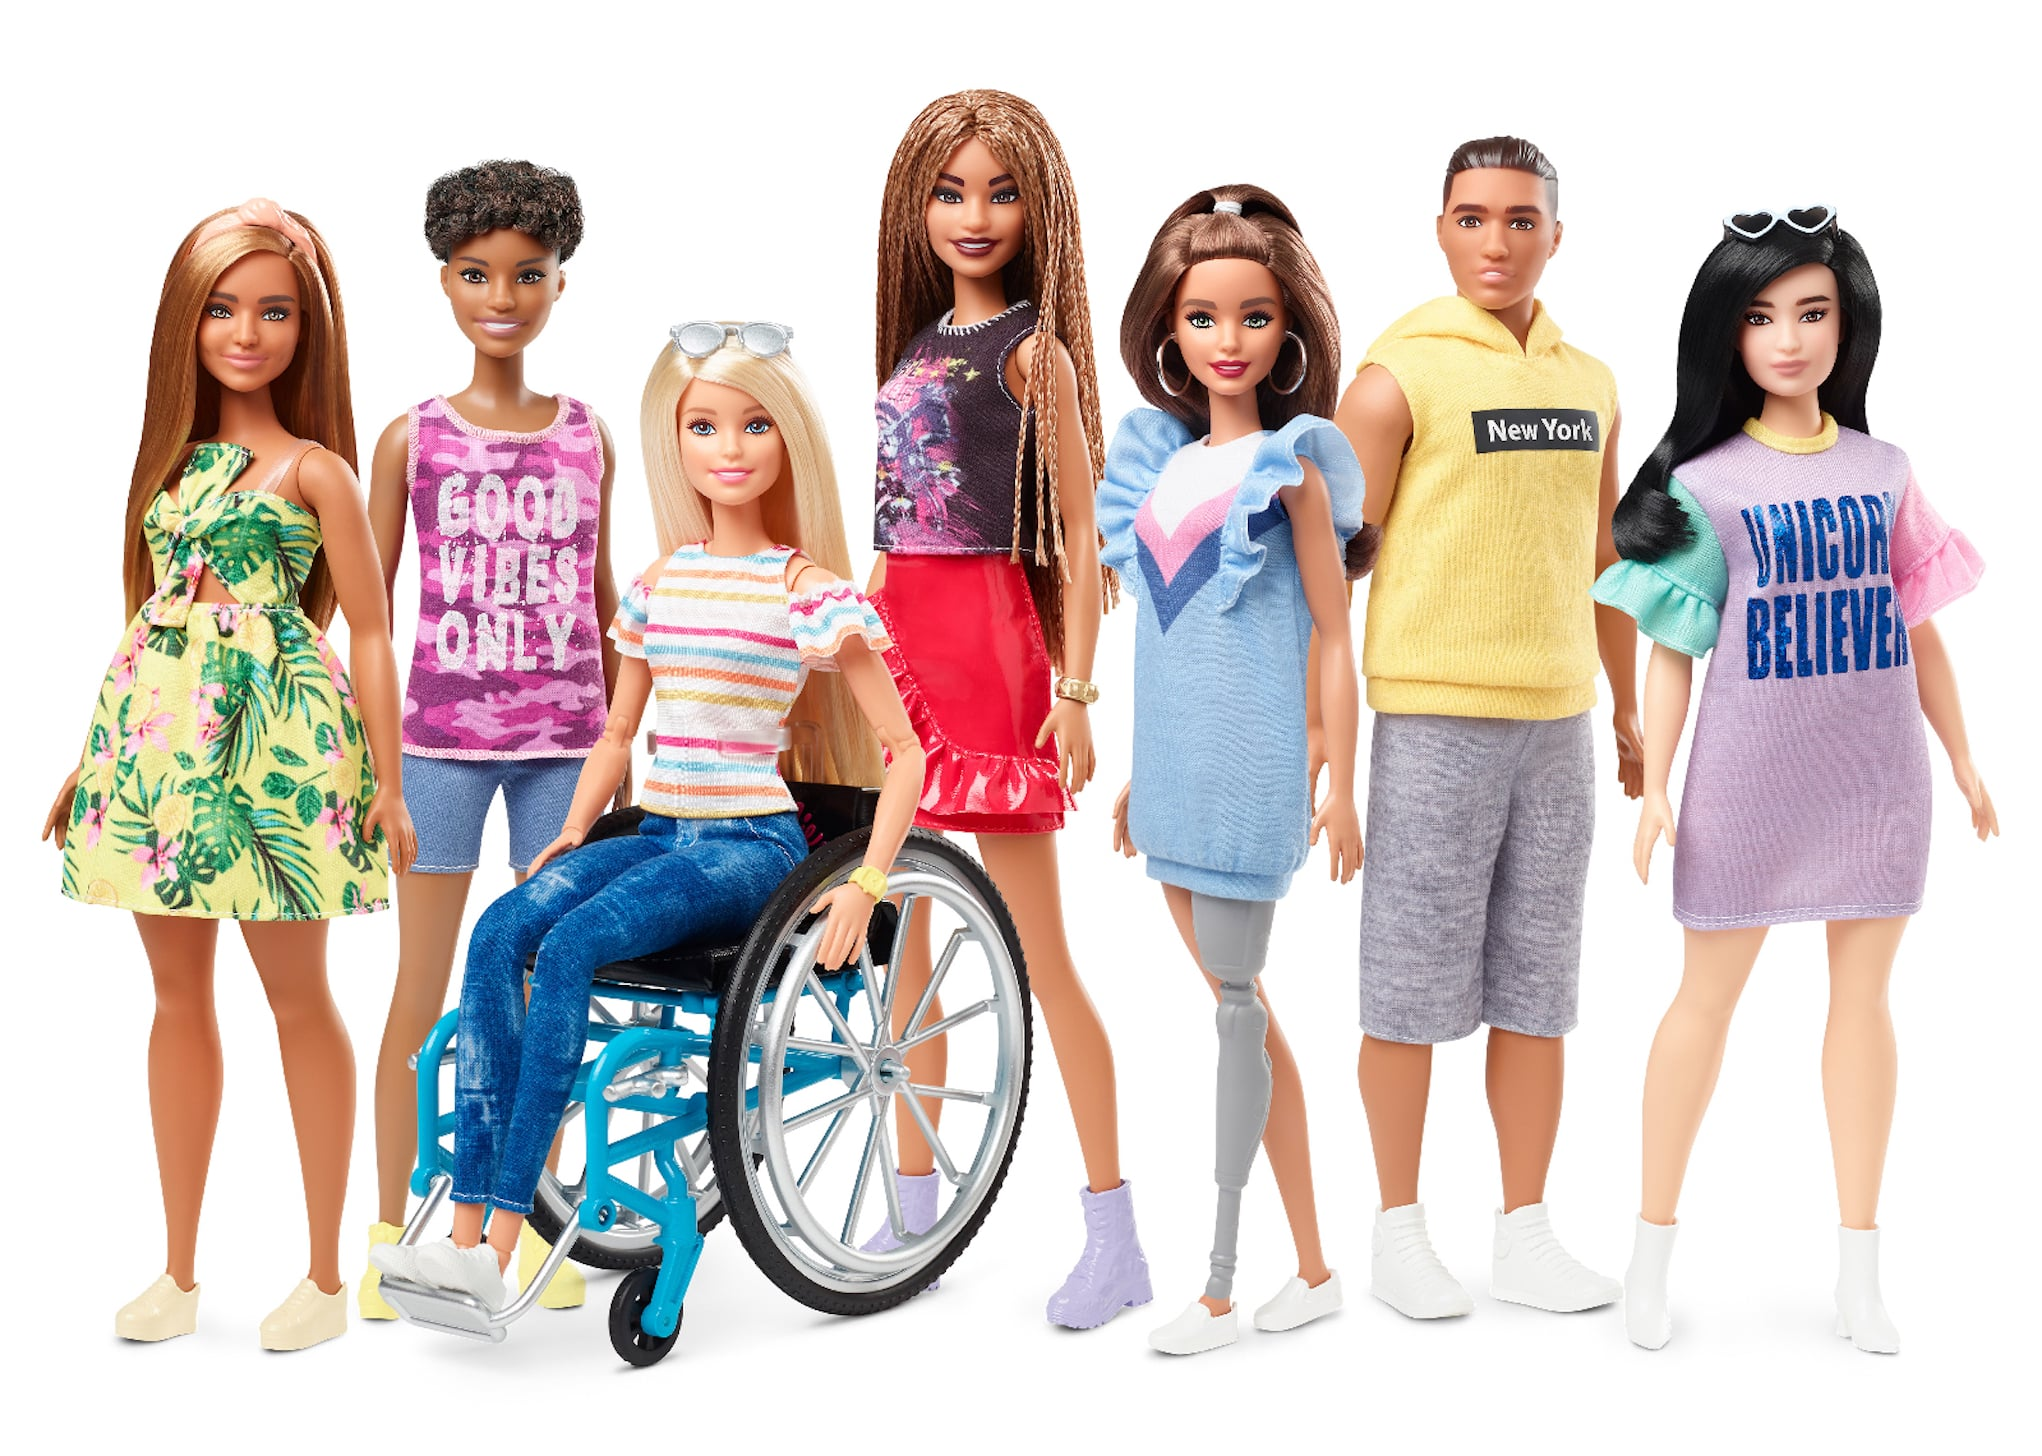 Barbie Is Expanding Its Fashionistas Collection to Include 2 Dolls With Disabilities